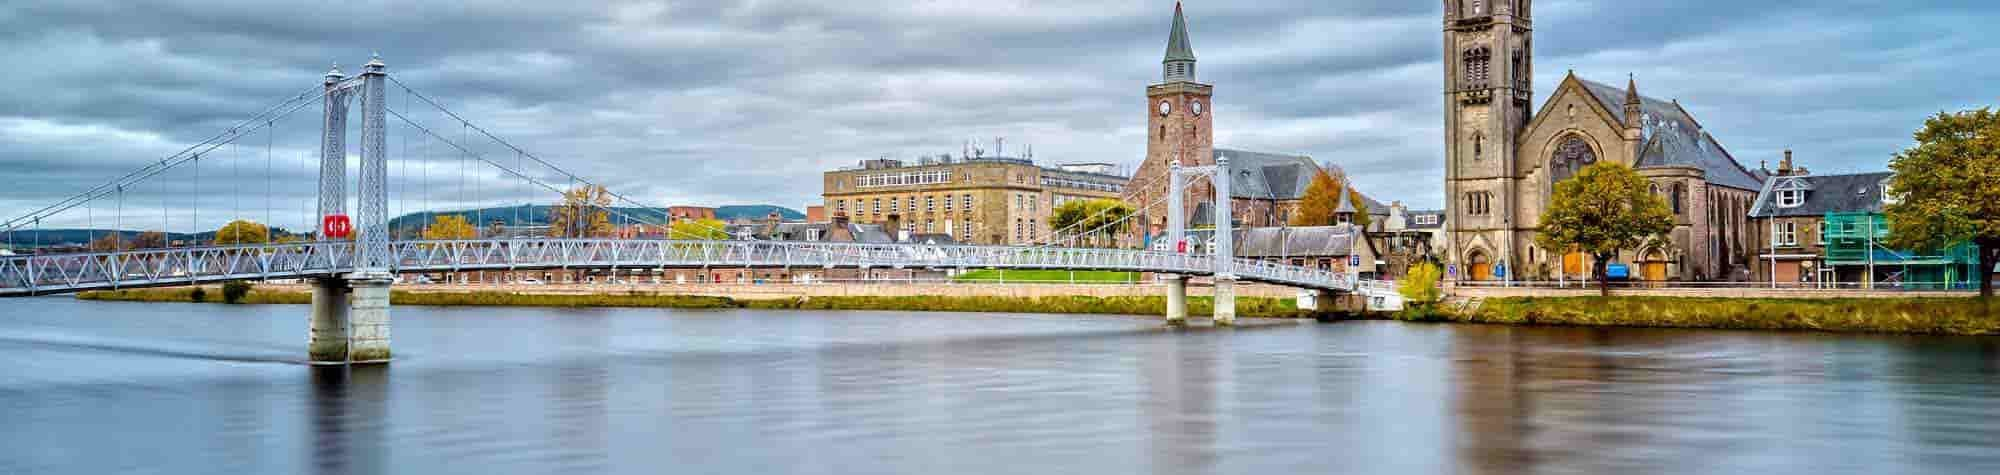 Inverness Recruitment Agency Header Image. Featuring panoramic view of cityscape comprising an array of Inverness landmark buildings along the River Ness. Inverness is home to one of Search Consultancy's exceptional recruitment agencies in Scotland.